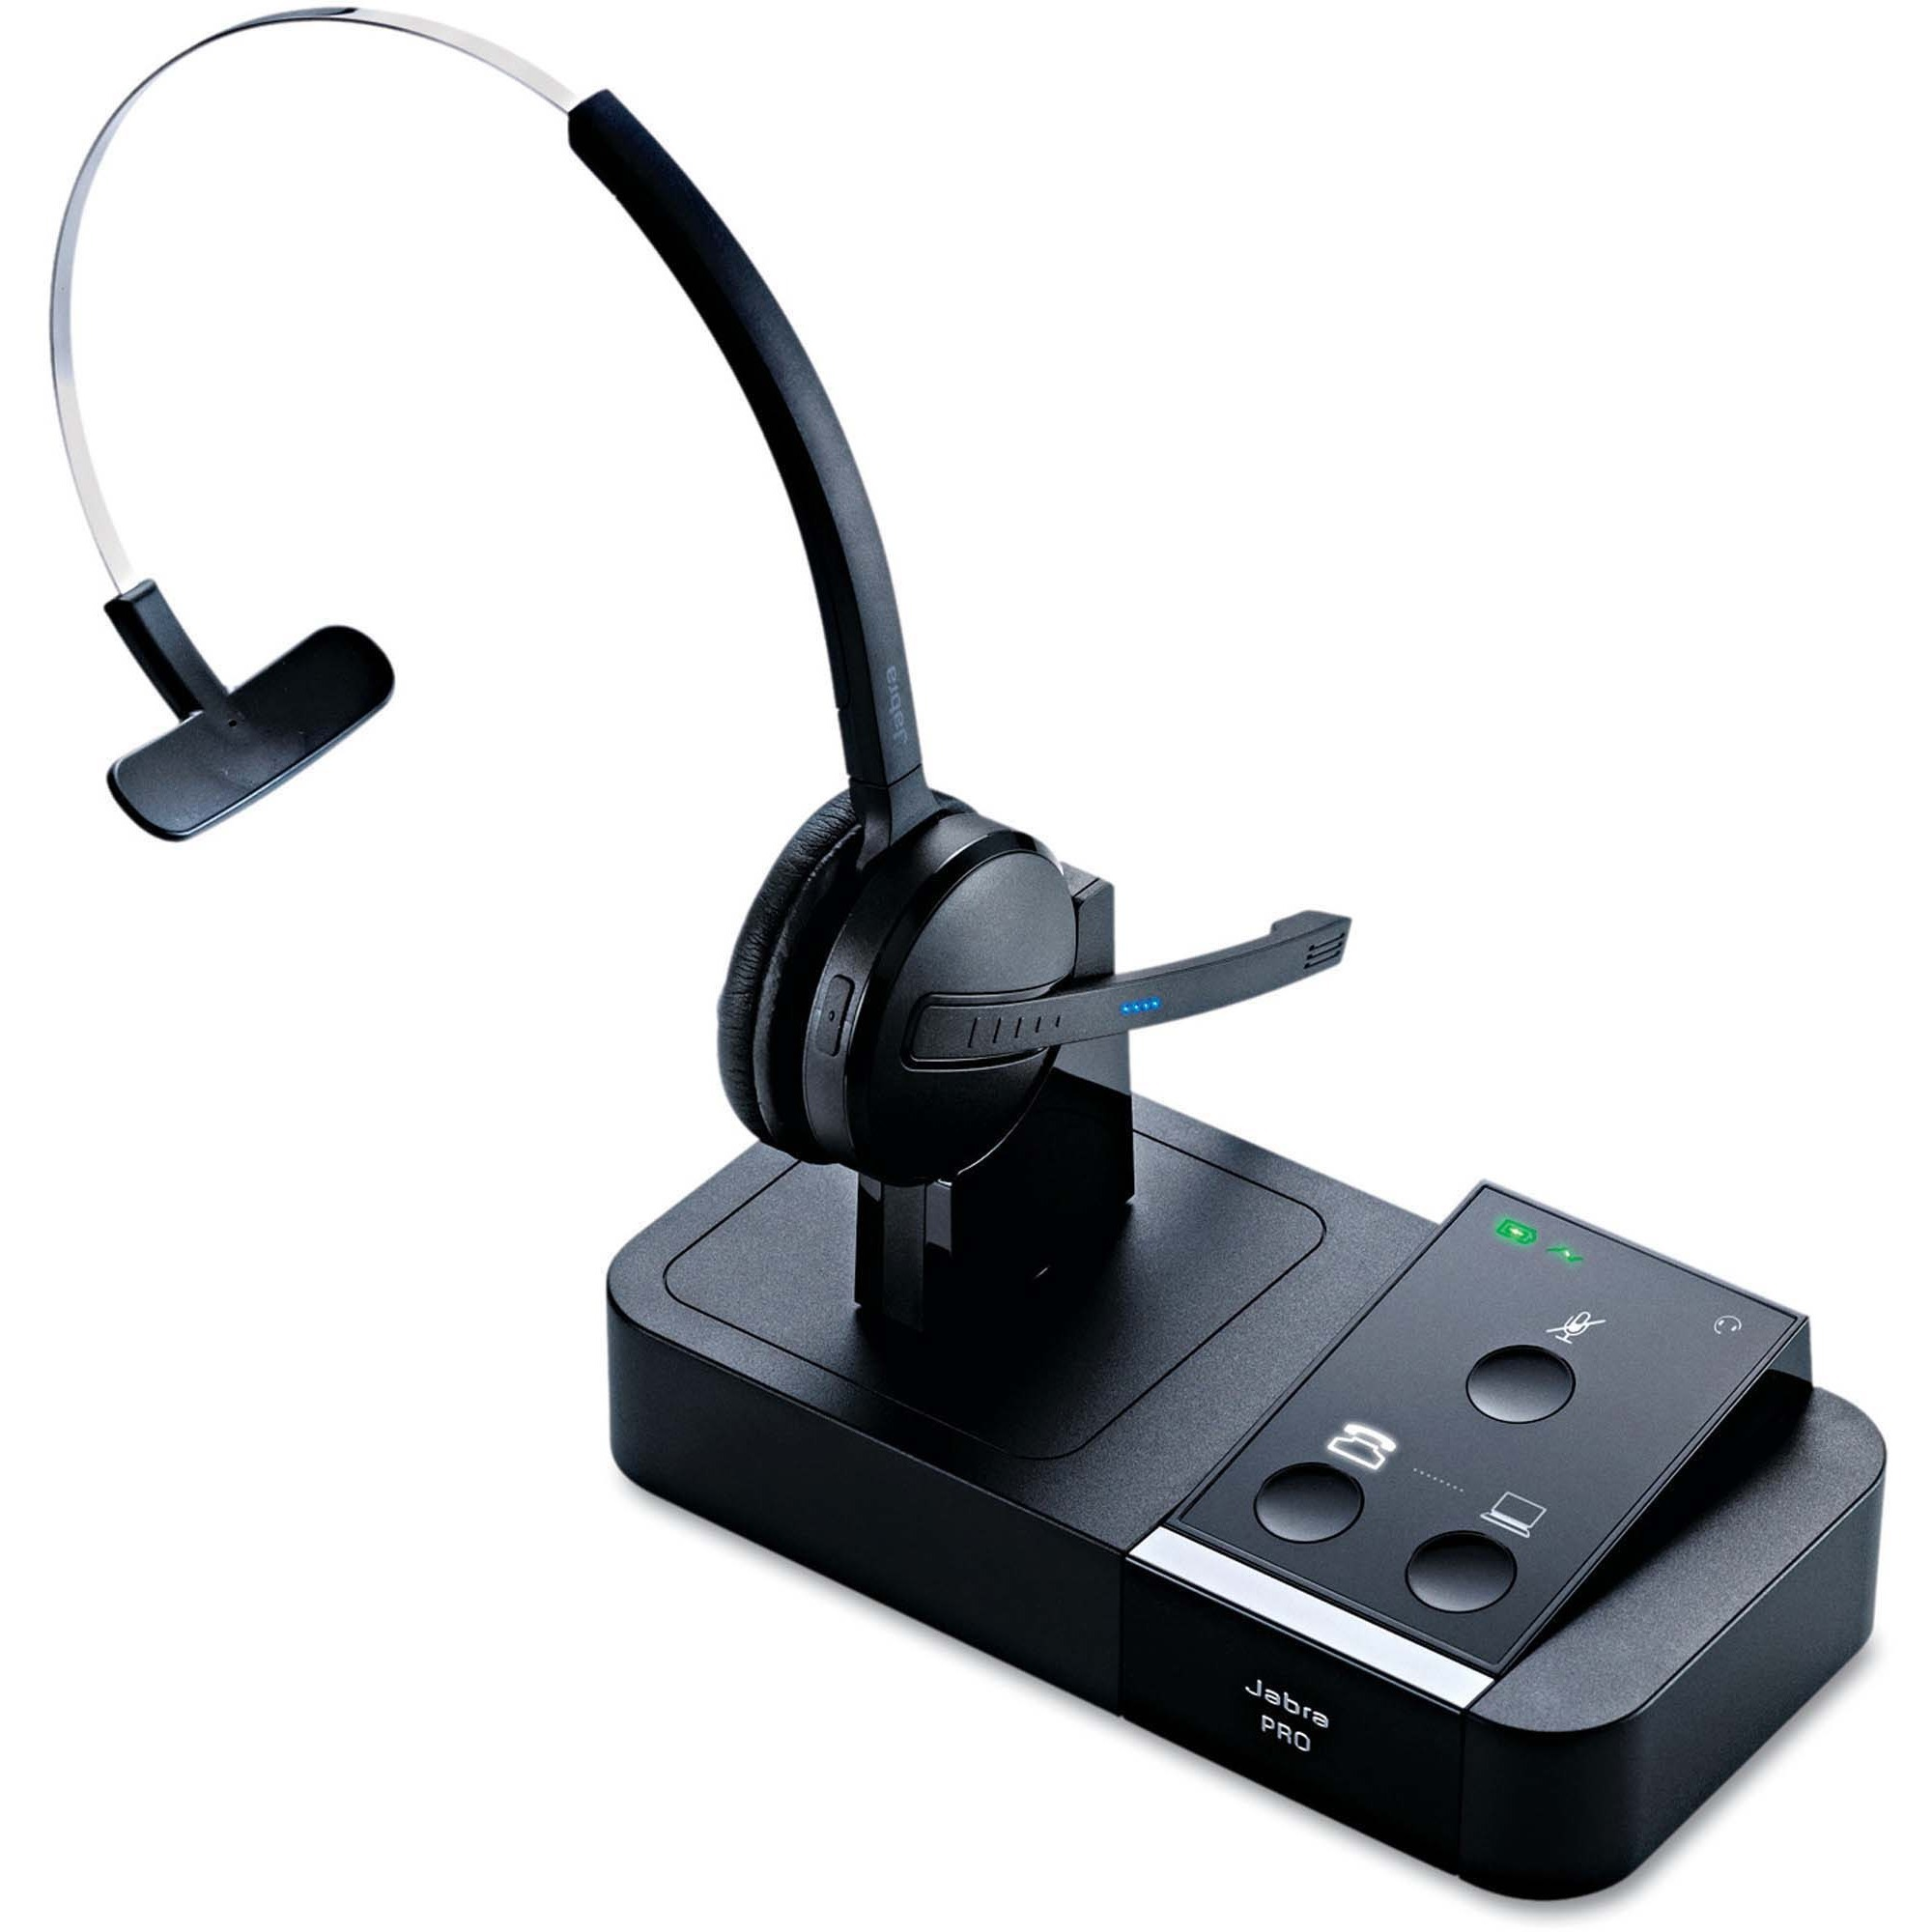 jabra pro 9450 wireless headset manual